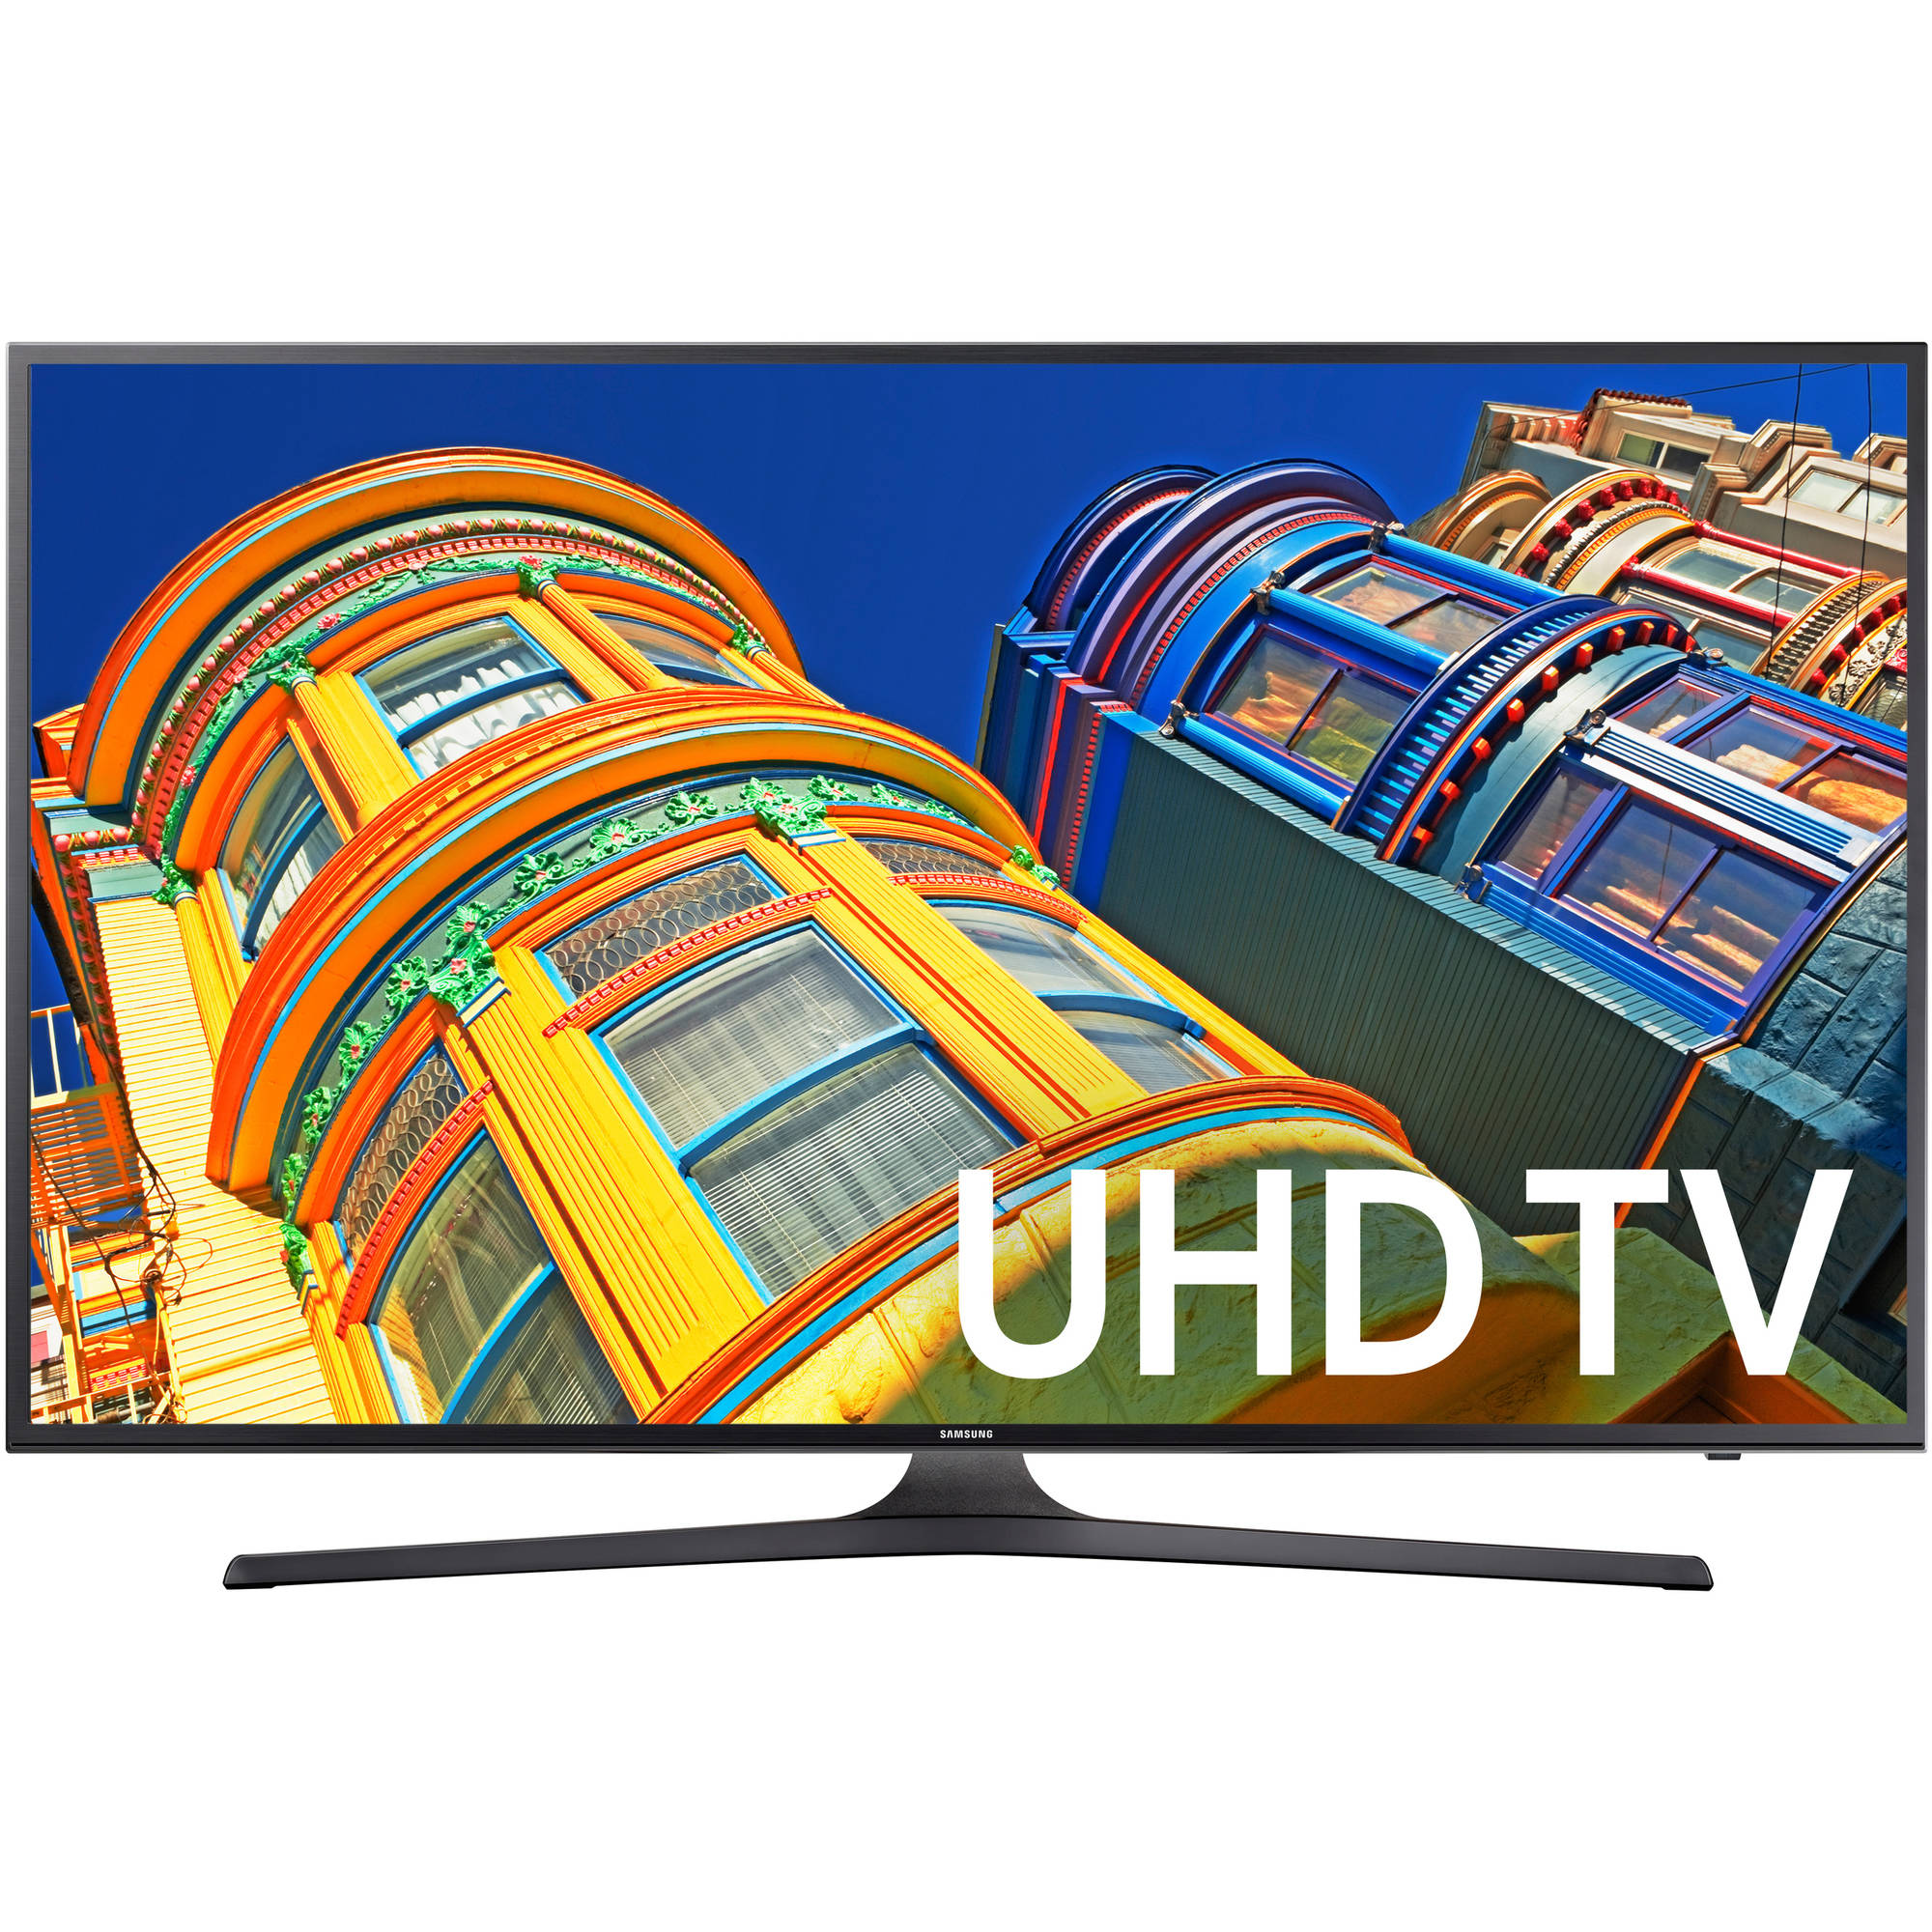 "Samsung un60ku6300f - 60"" class - 6 series led tv - smart tv - 4k uhd (2160p) 3840 x 2160 - hdr - direct-lit led, uhd dimming - dark titan - refurbished"